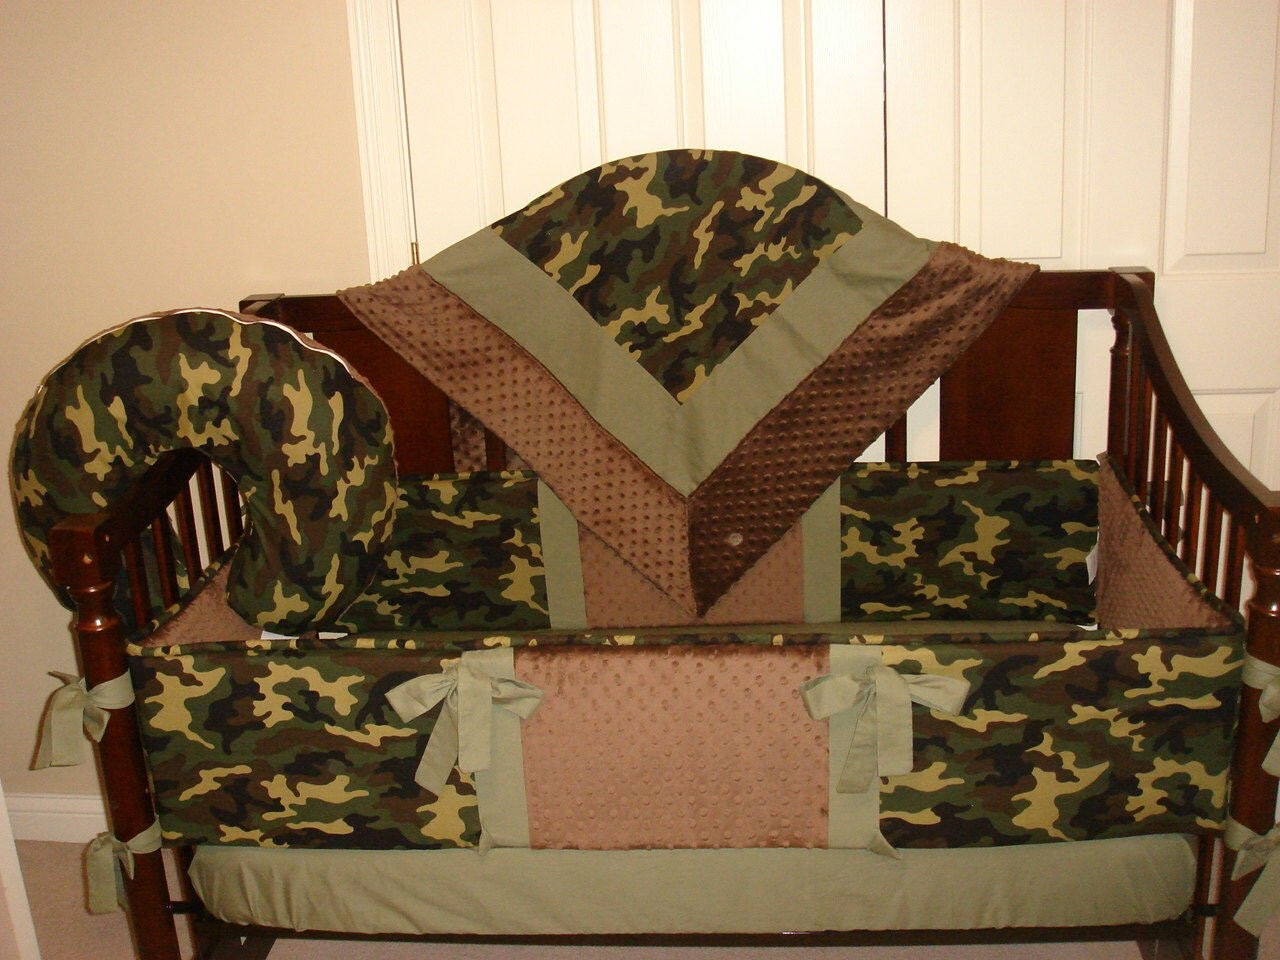 Camouflage Baby Bedding Crib Set You Design Many Colors